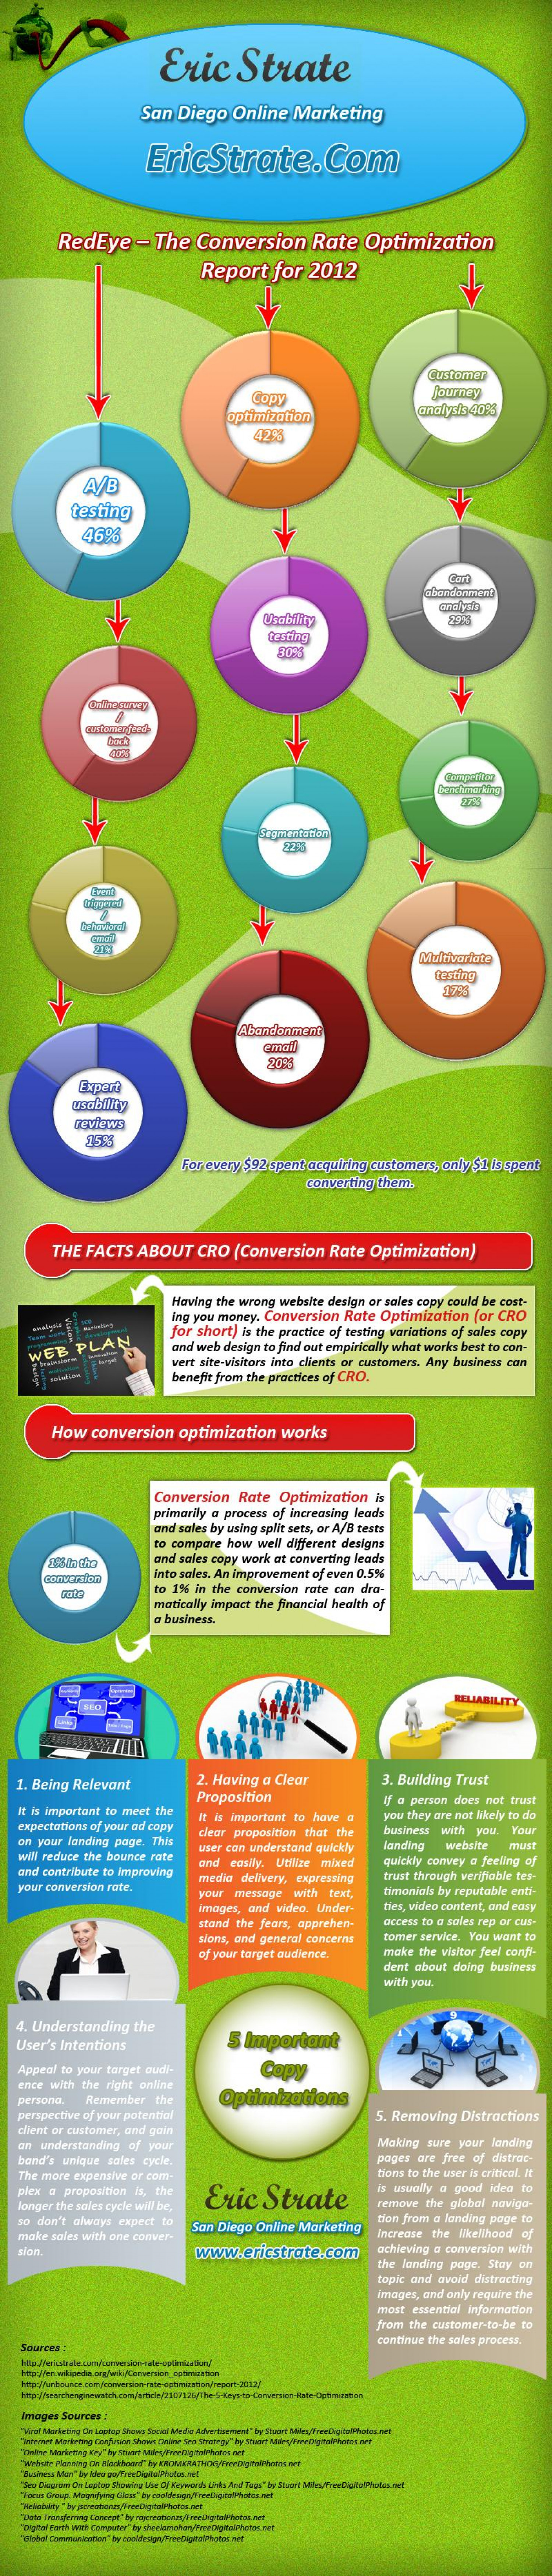 Eric Strate San Diego Online Marketing Infographic